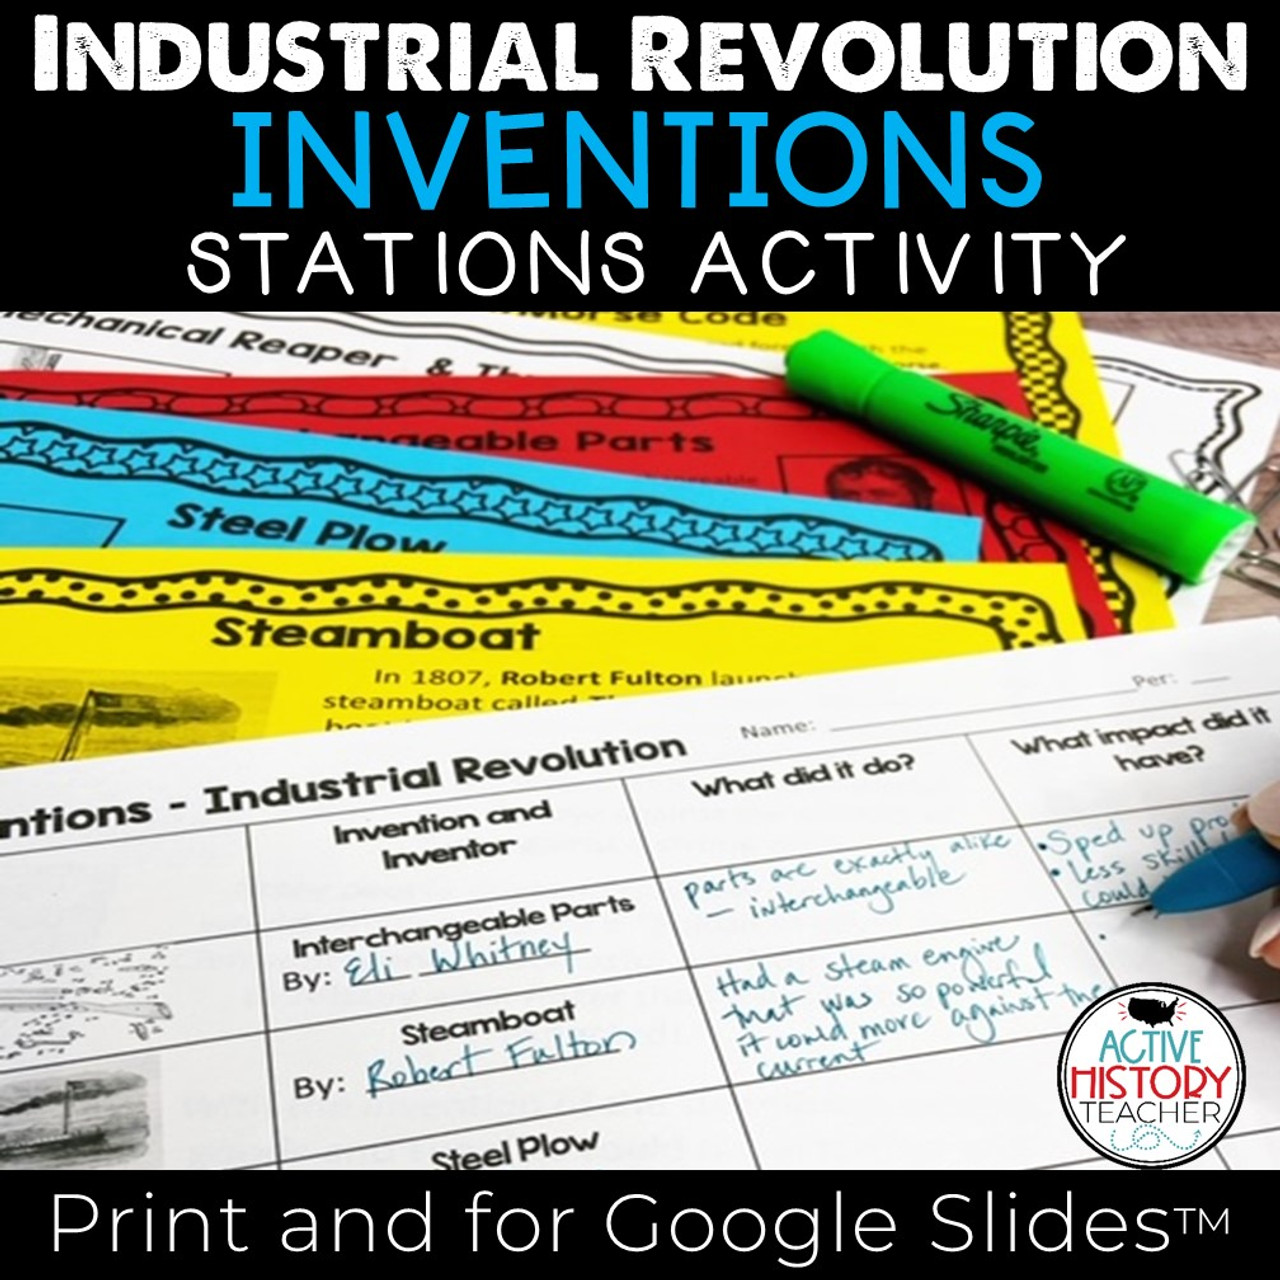 Industrial Revolution Inventions: Stations Activity - Amped Up Learning [ 1280 x 1280 Pixel ]